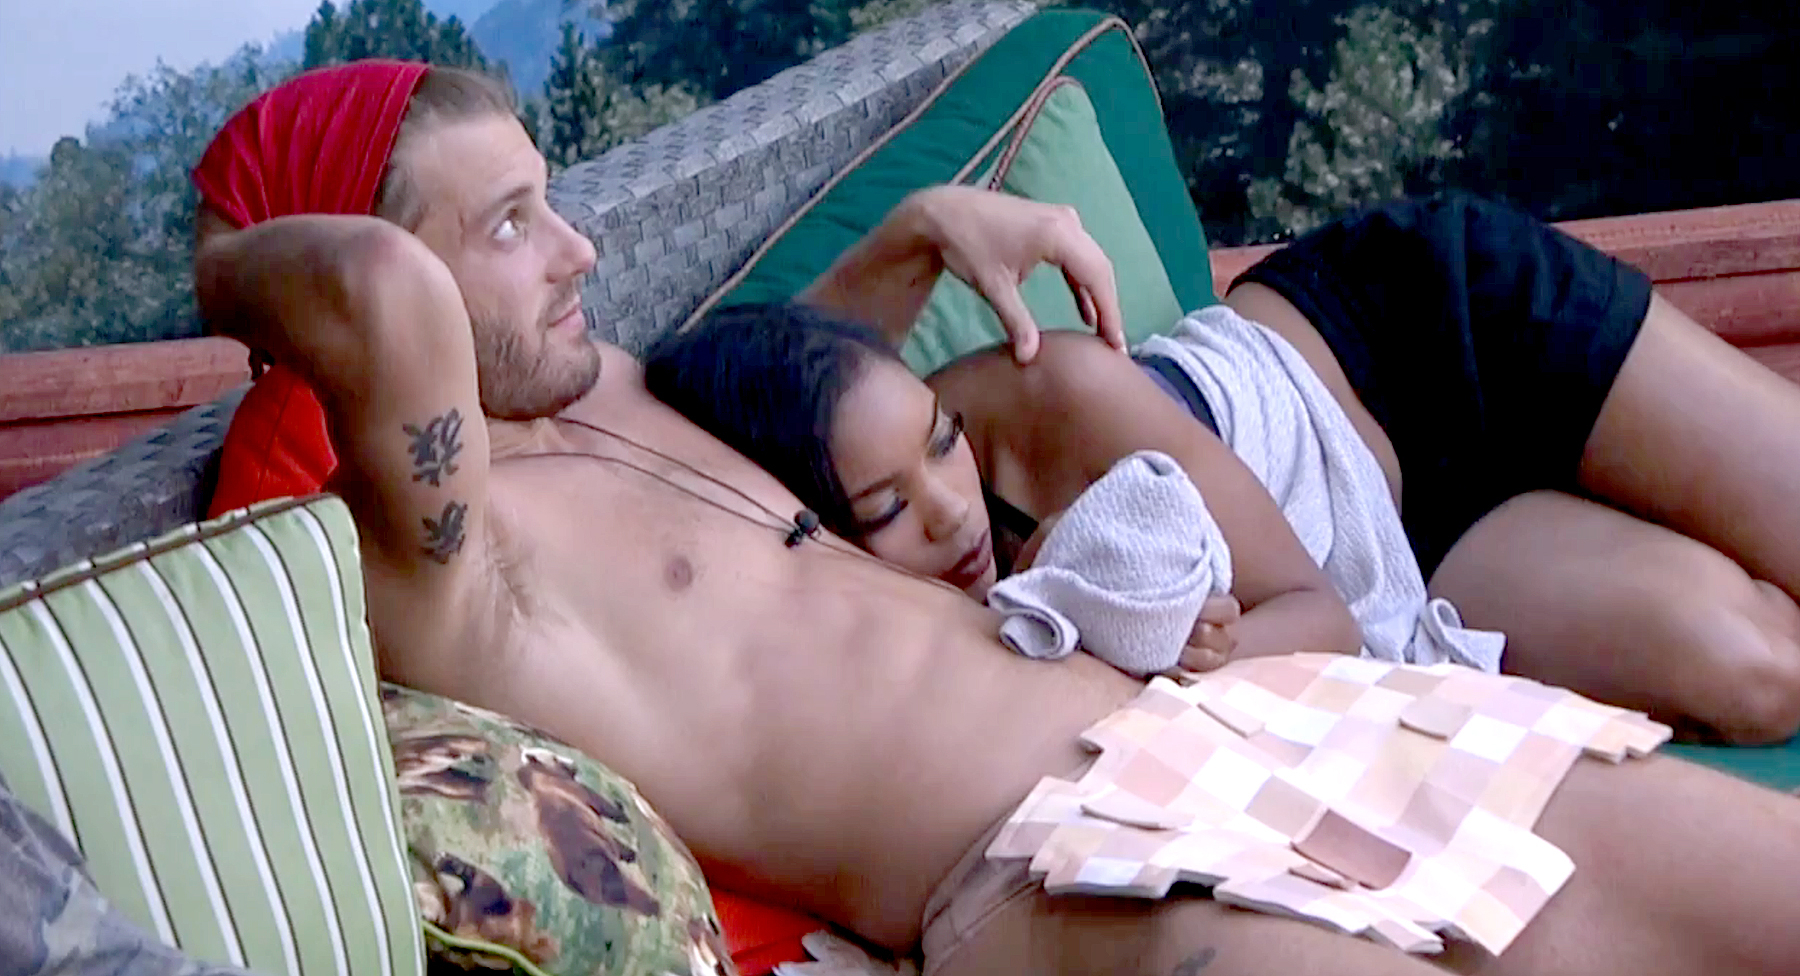 Paulie Calafiore and Zakiyah Everette on Big Brother.